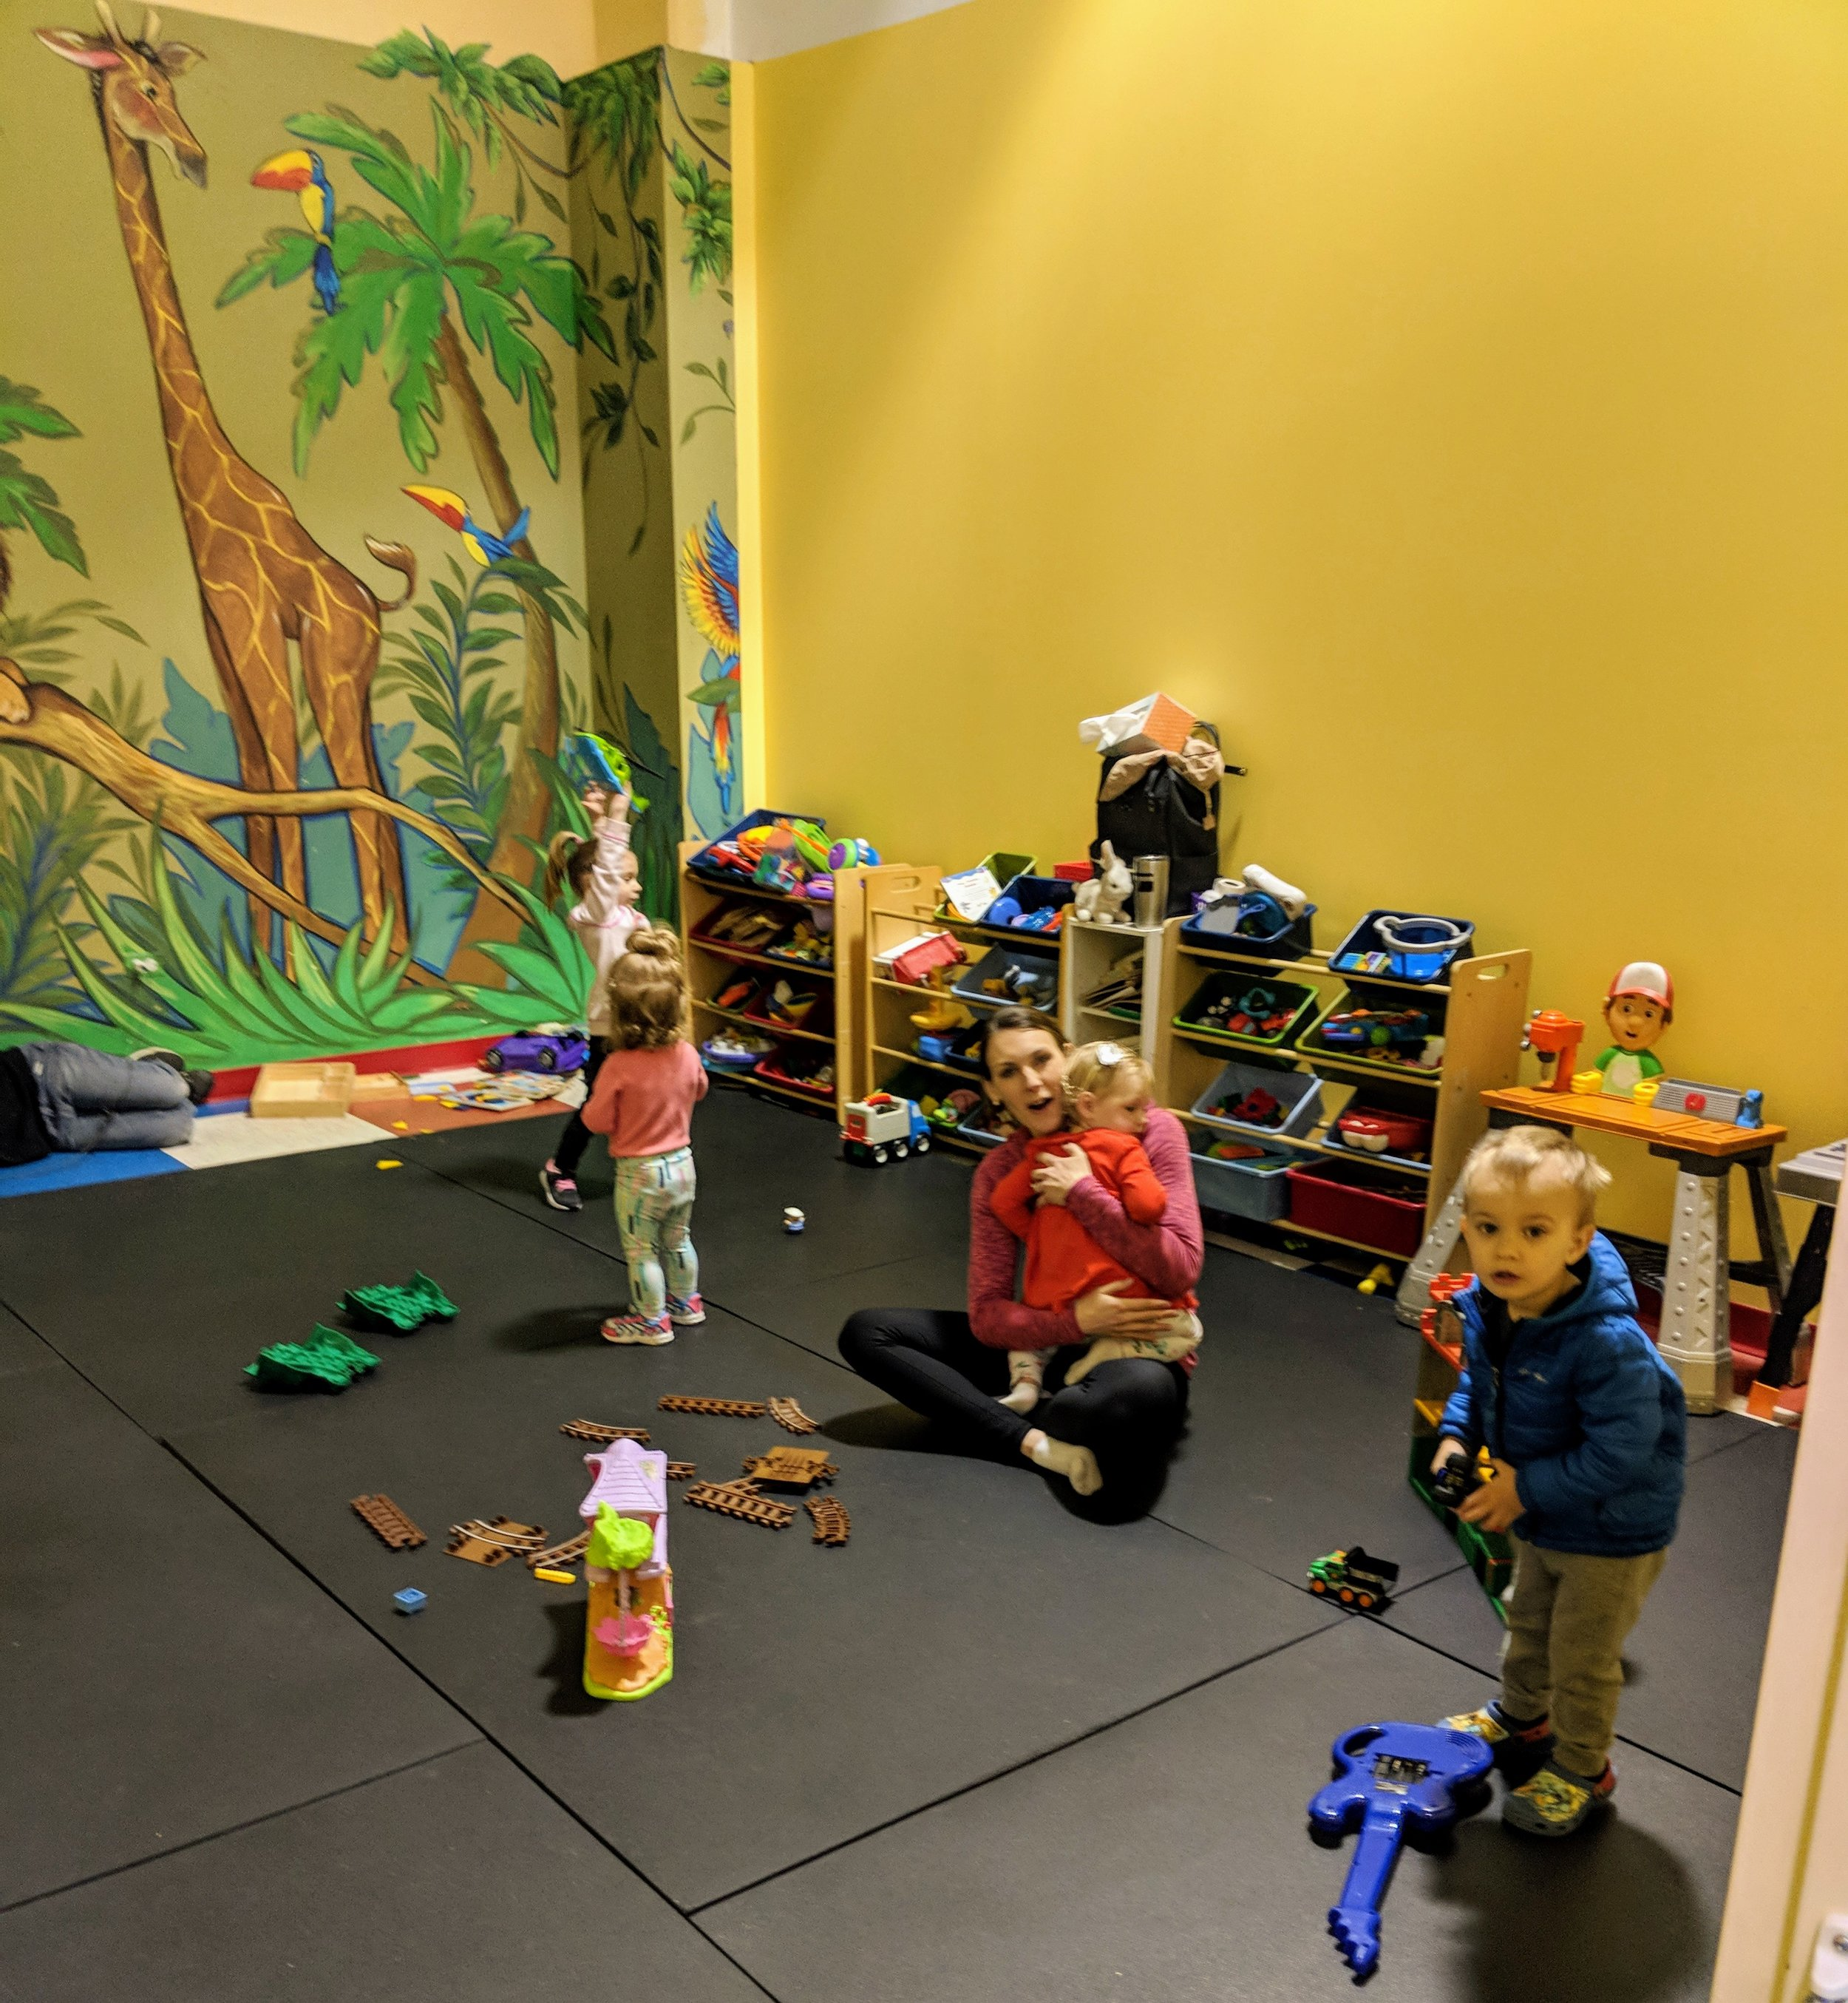 Membership includes supervised child care!9:15am, 10:15am, and 4:15pm classes Monday through Fridays9:15am on Saturdays -